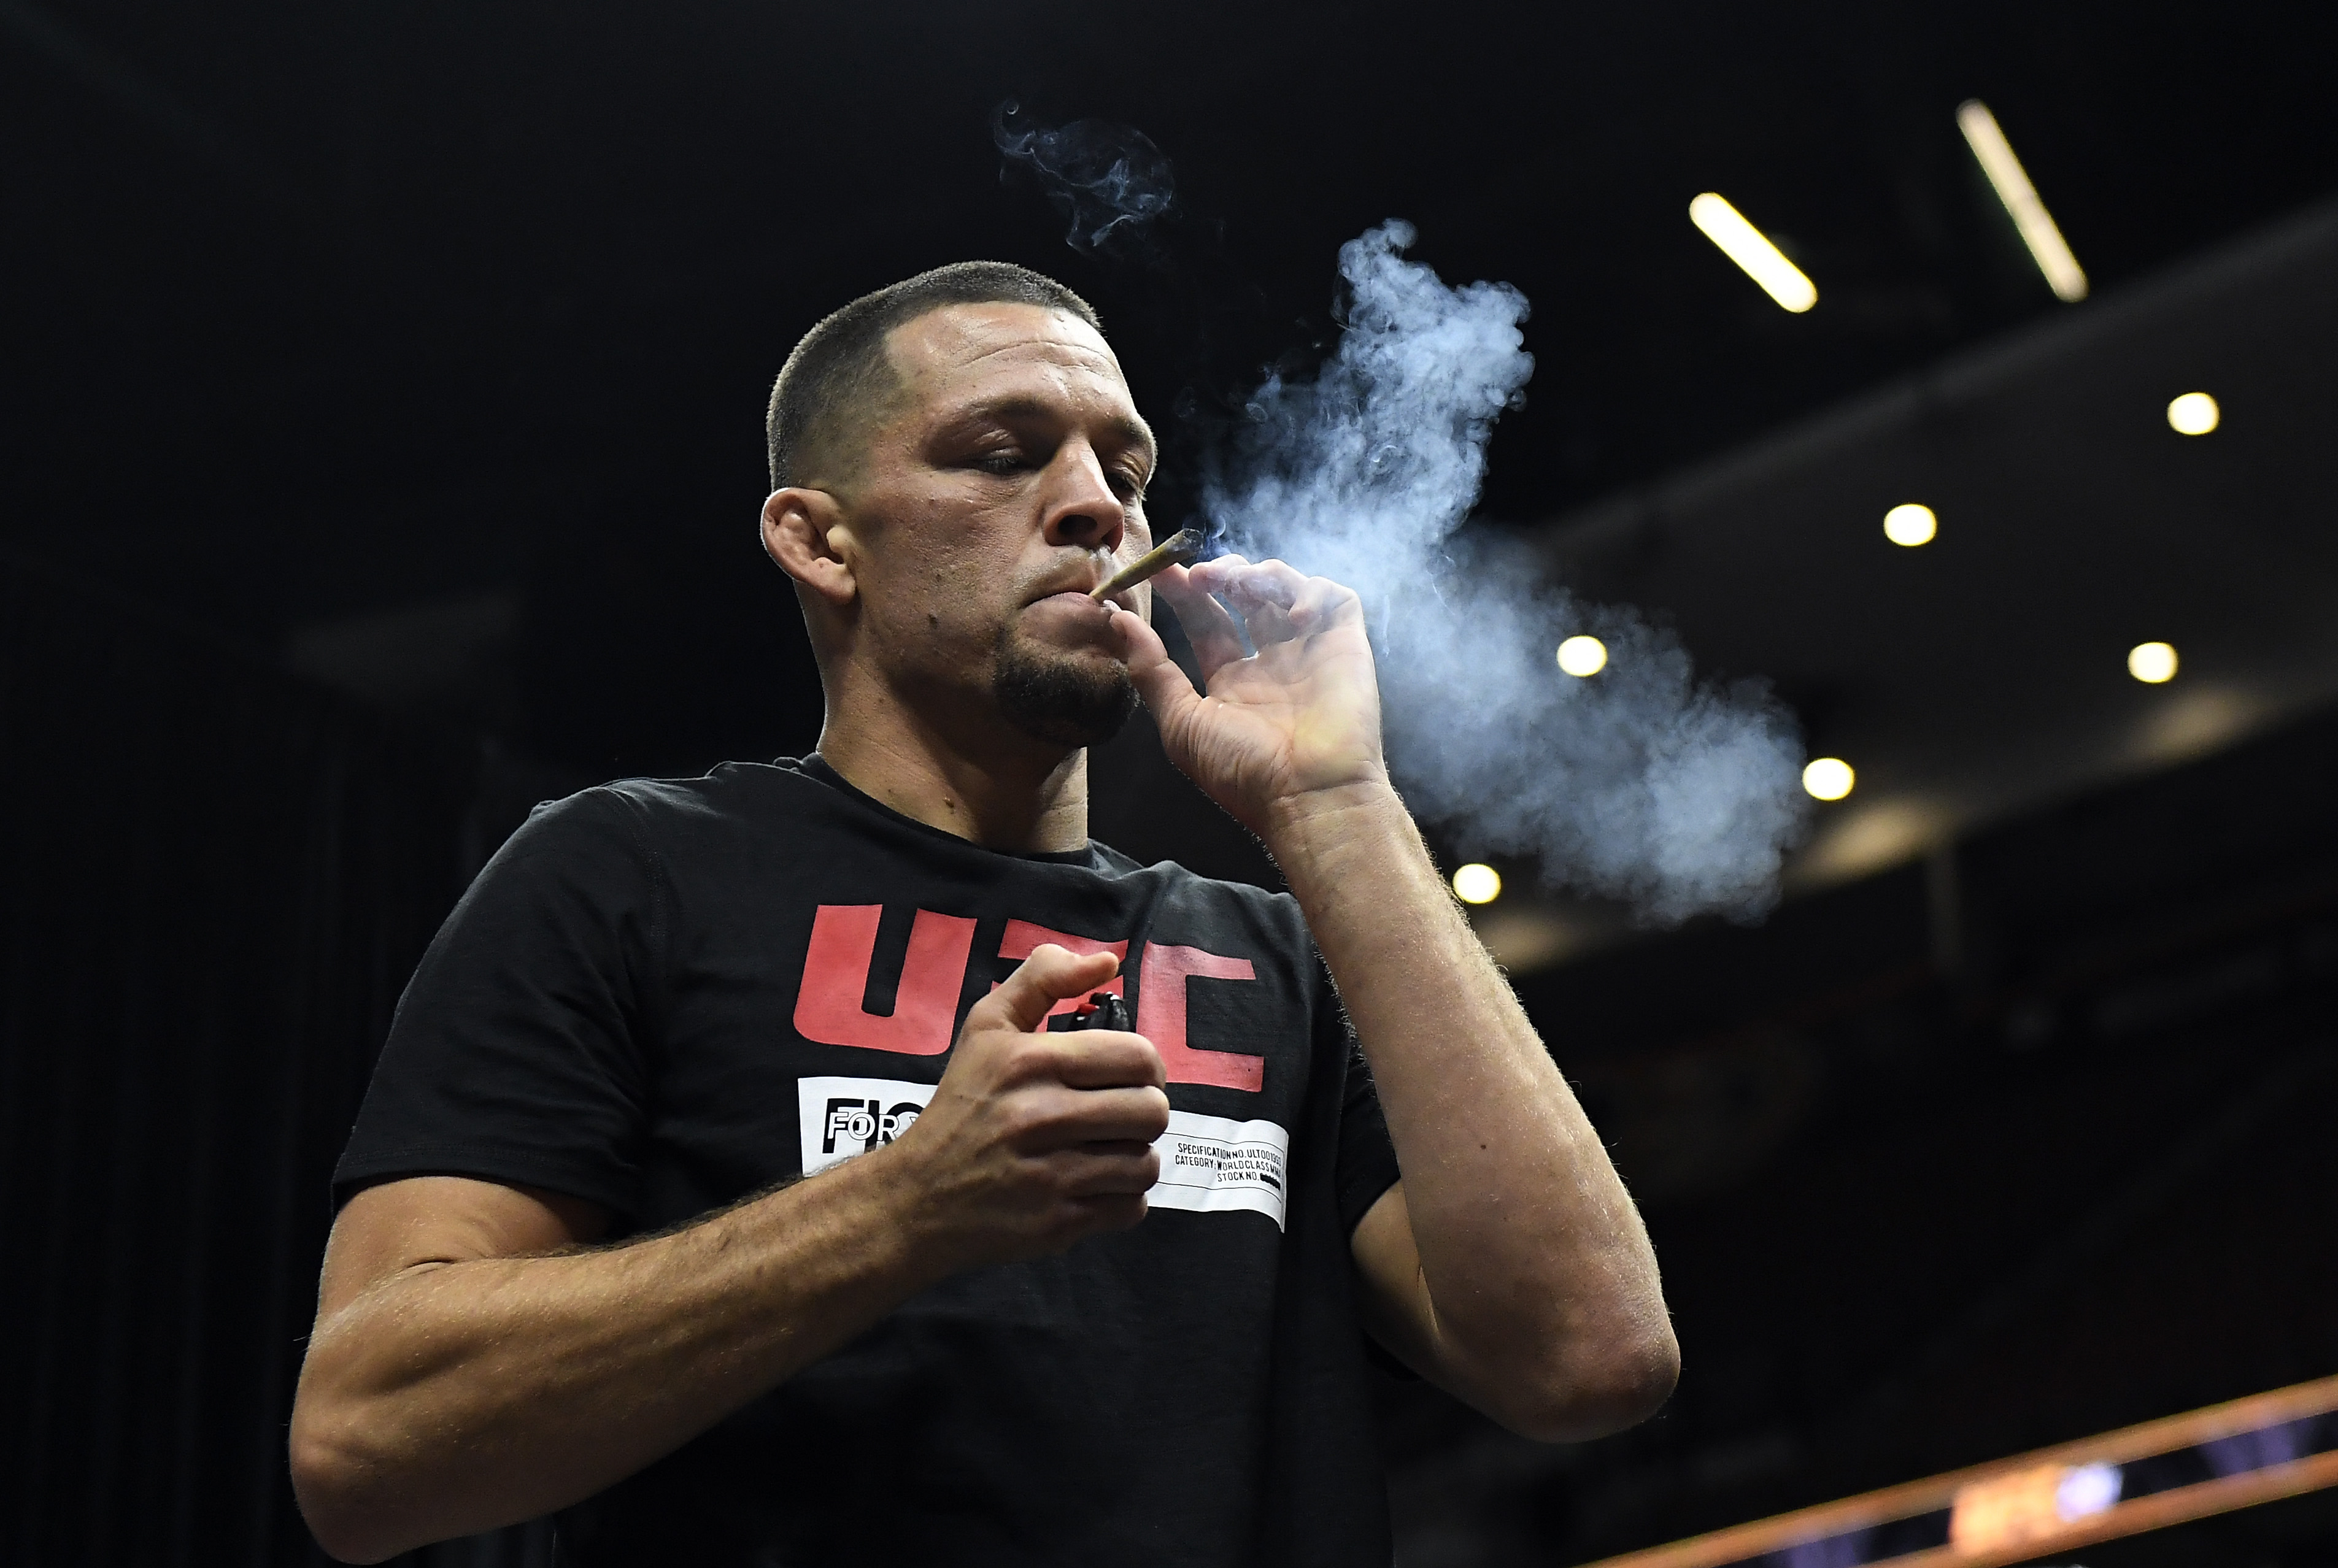 Nate Diaz smoked cannabis oil on stage during the UFC 241 open workouts